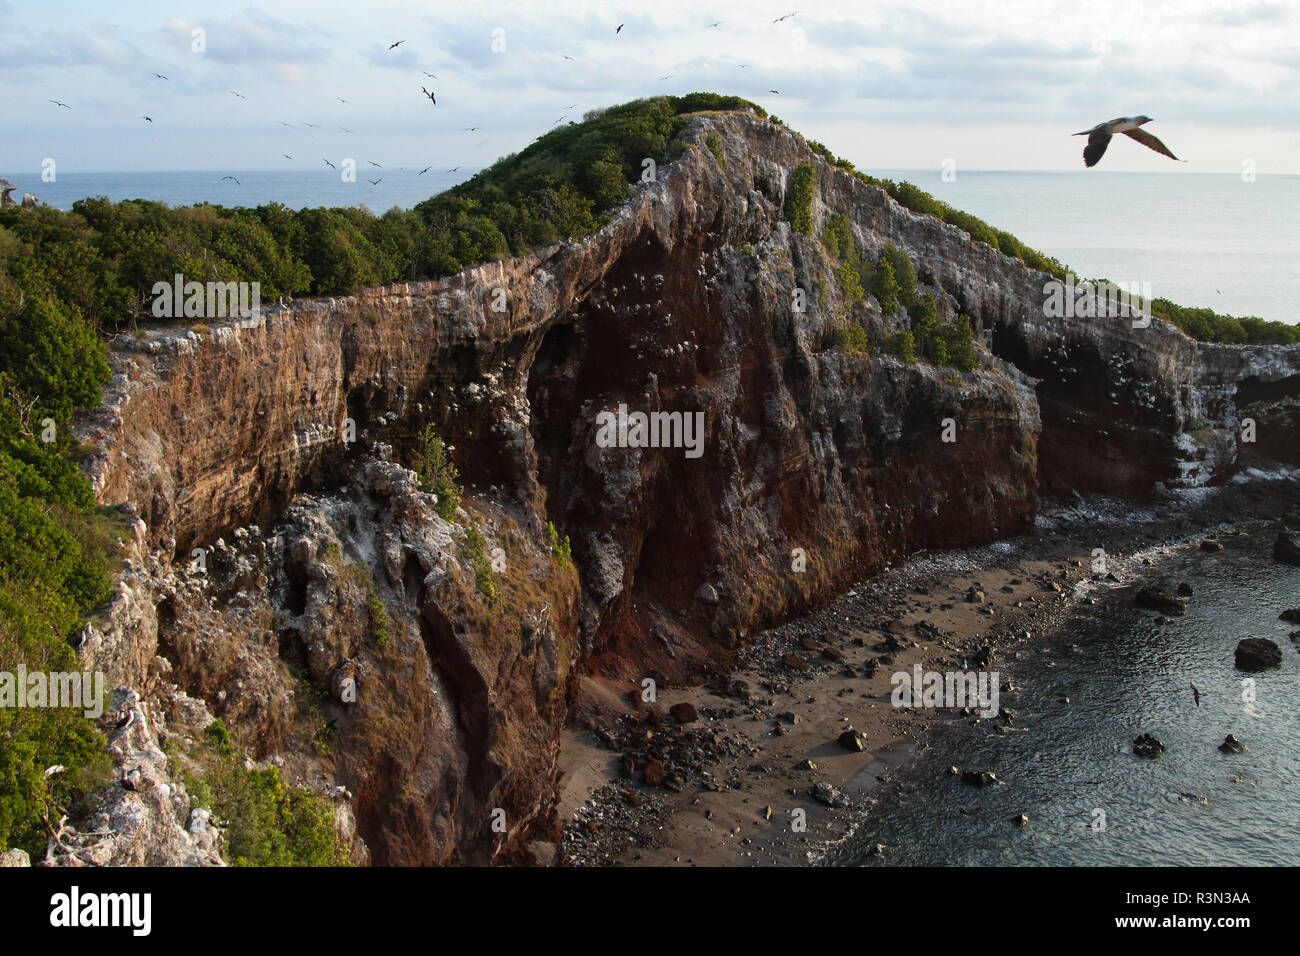 Blue-footed booby (Sula nebouxii) in flight over cliff, Isla Isabella, Nayarit, Mexico - Stock Image